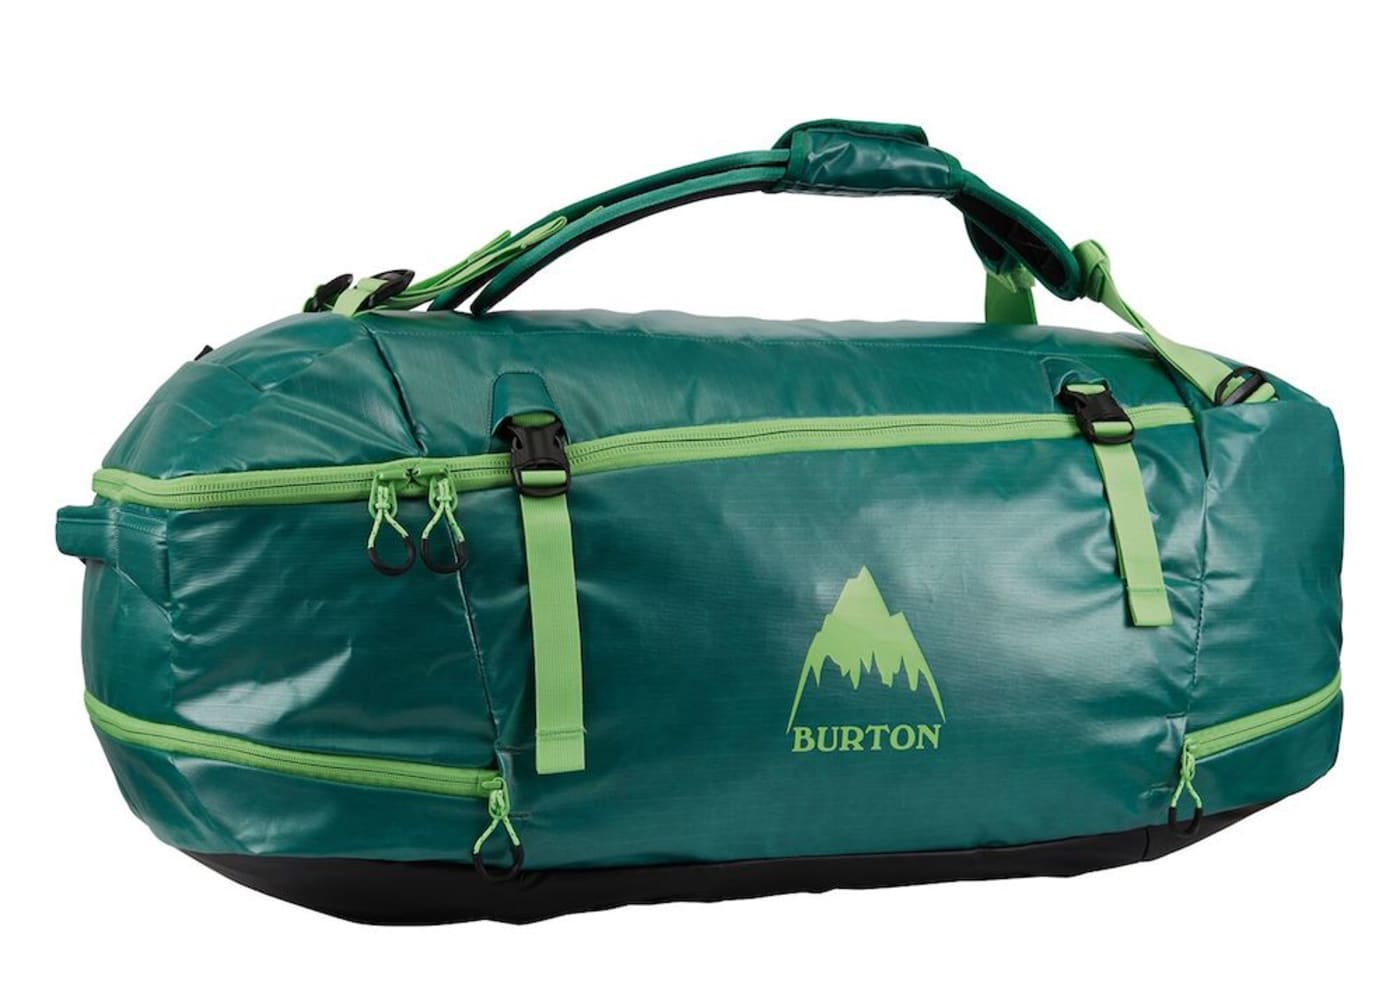 Burton Luggage Complex Best Style Releases